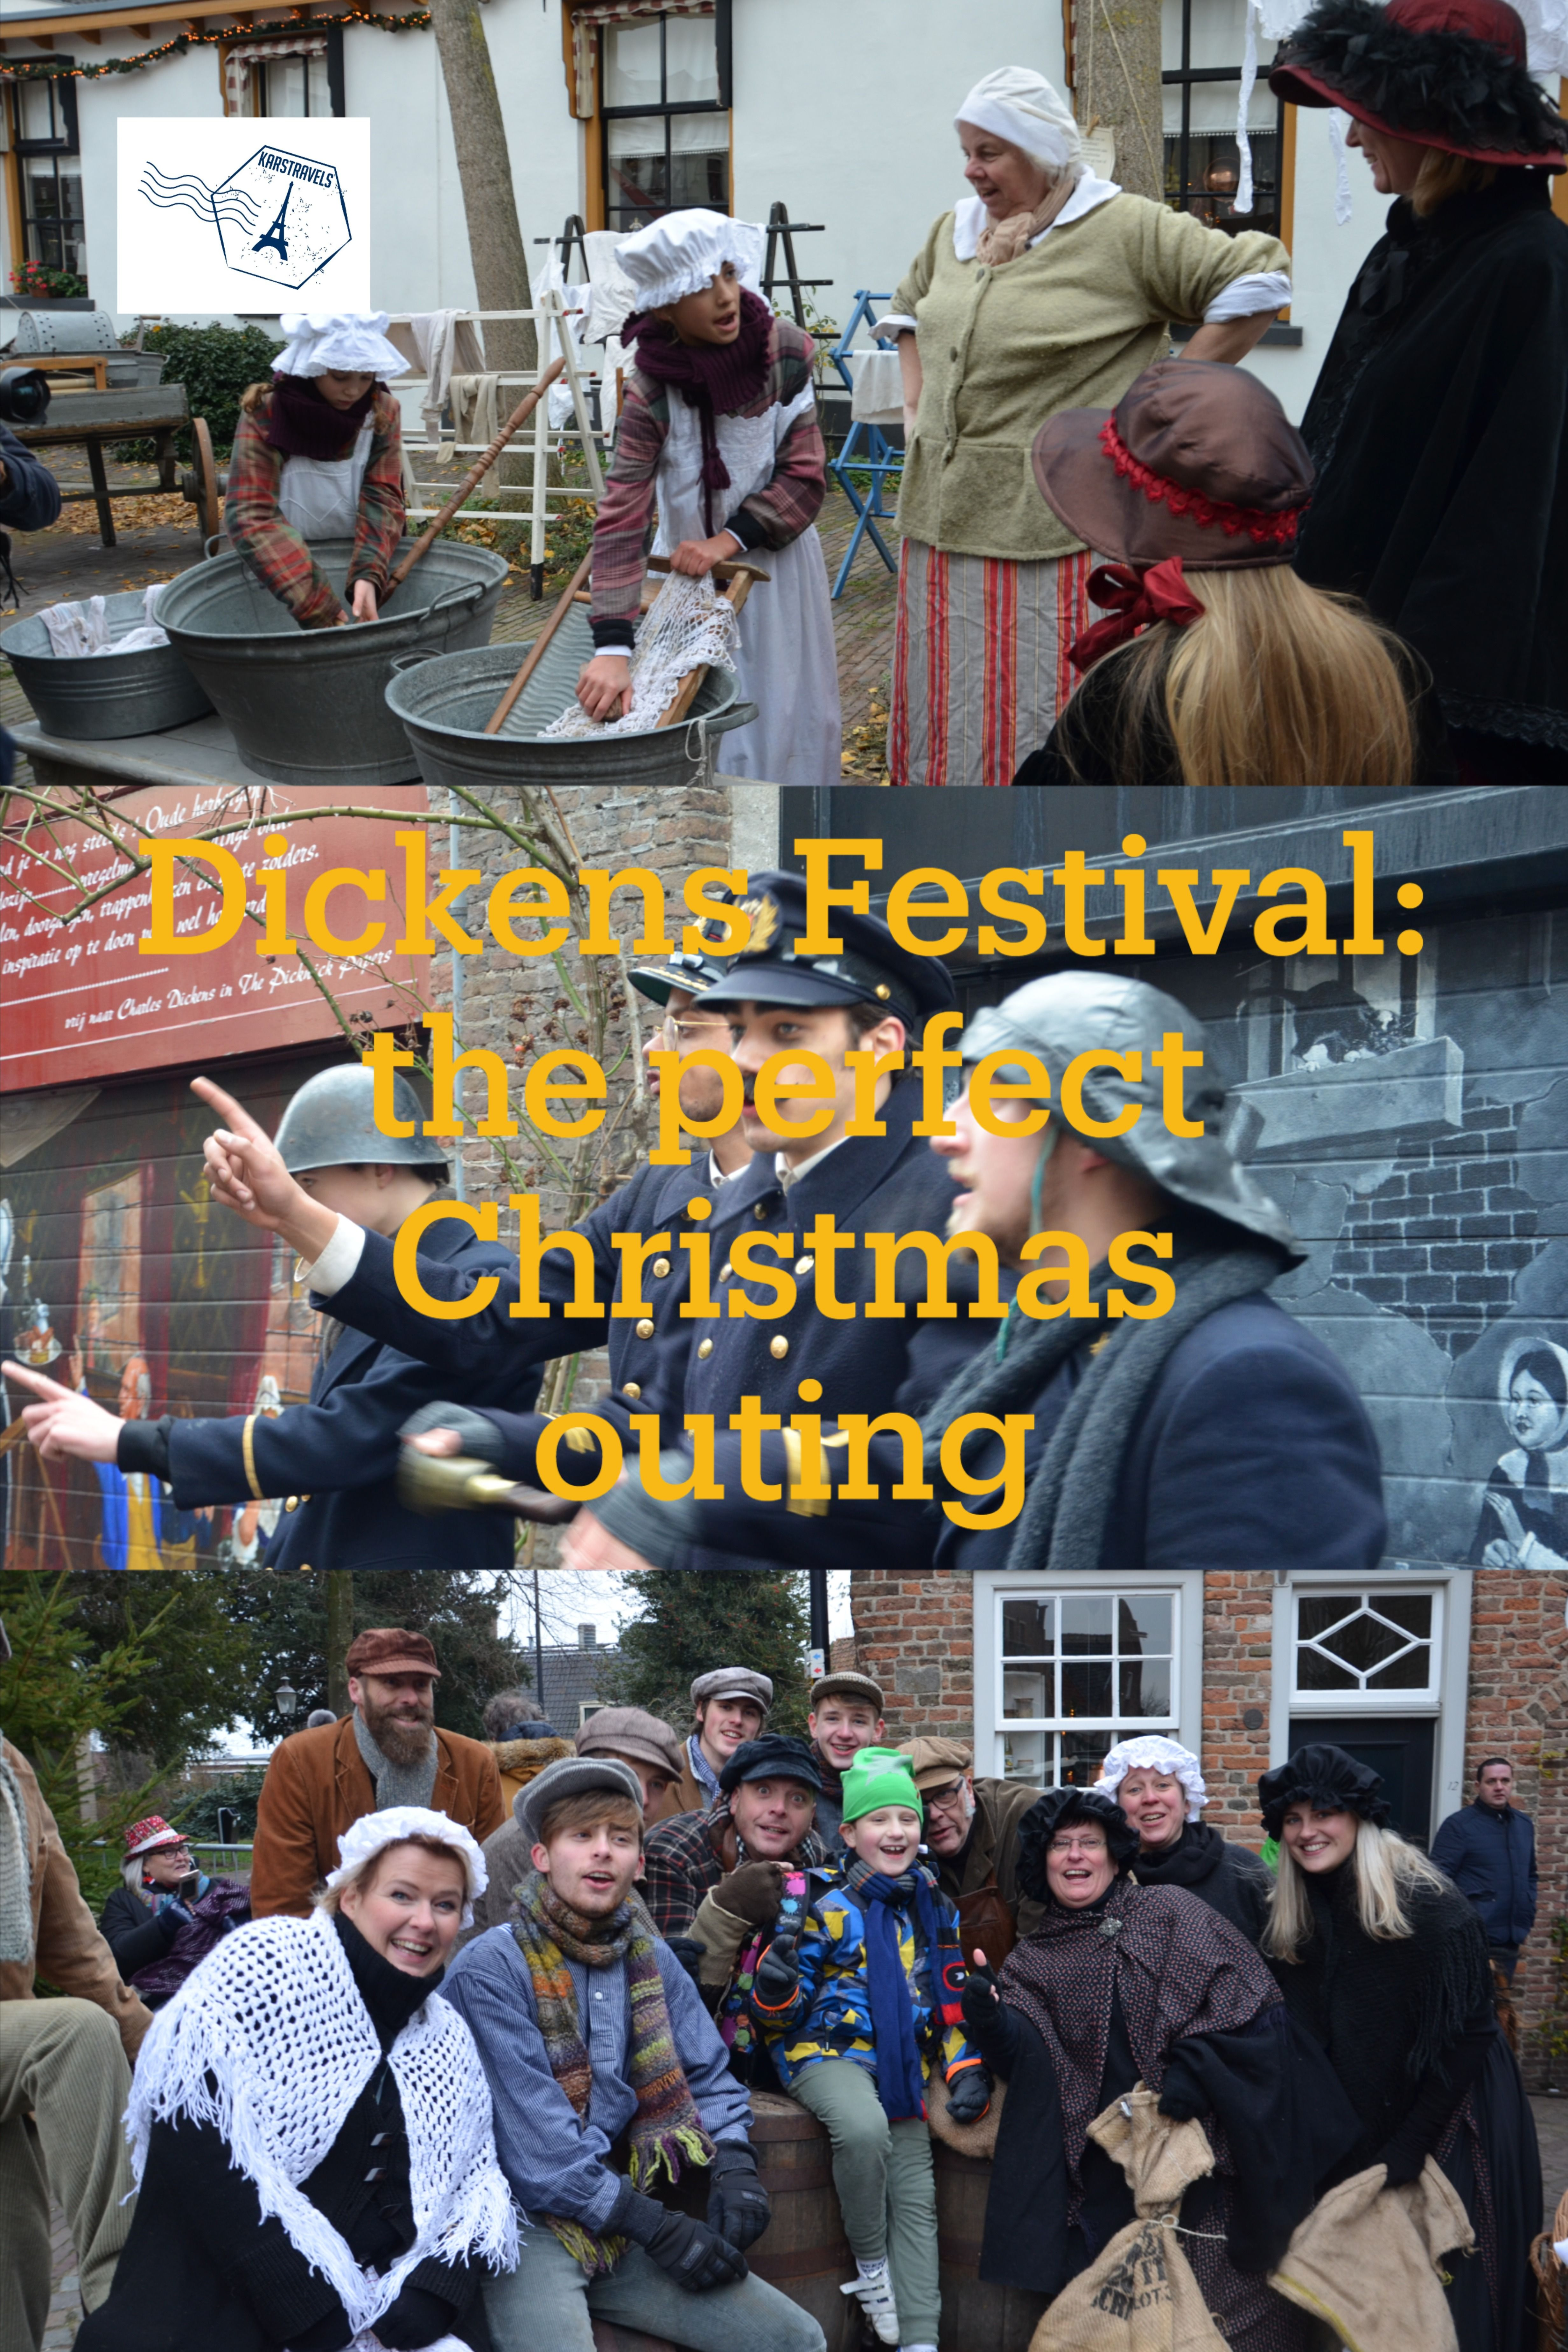 Dickens Christmas Festival 2020 Dickens Festival: the perfect Christmas outing in 2020 | Christmas